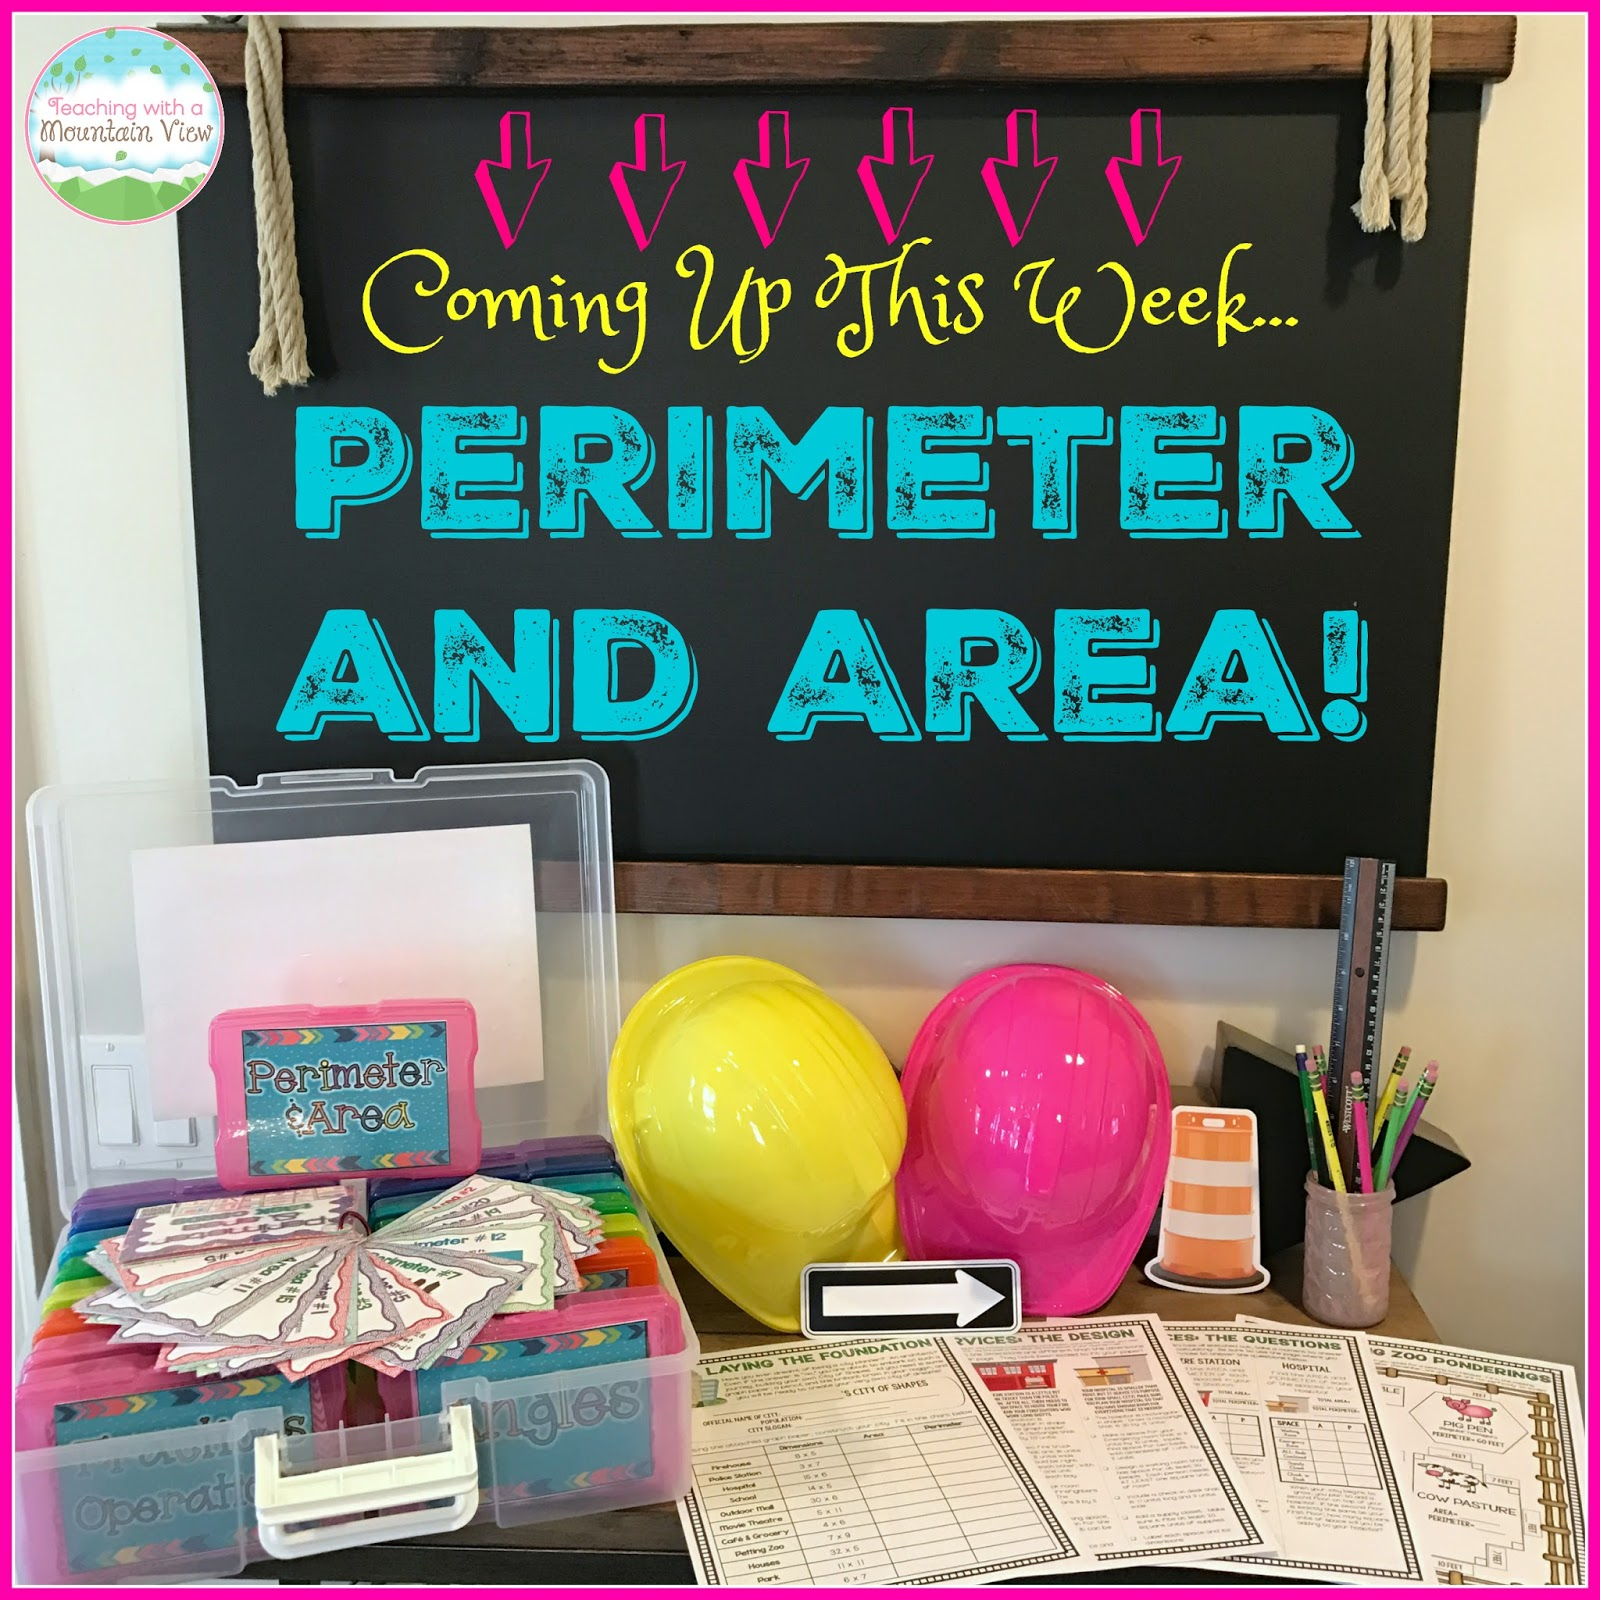 Before We Began Our Perimeter And Area Unit This Year, I Sent Out This  Little Teaser To My Students Via Classdojo